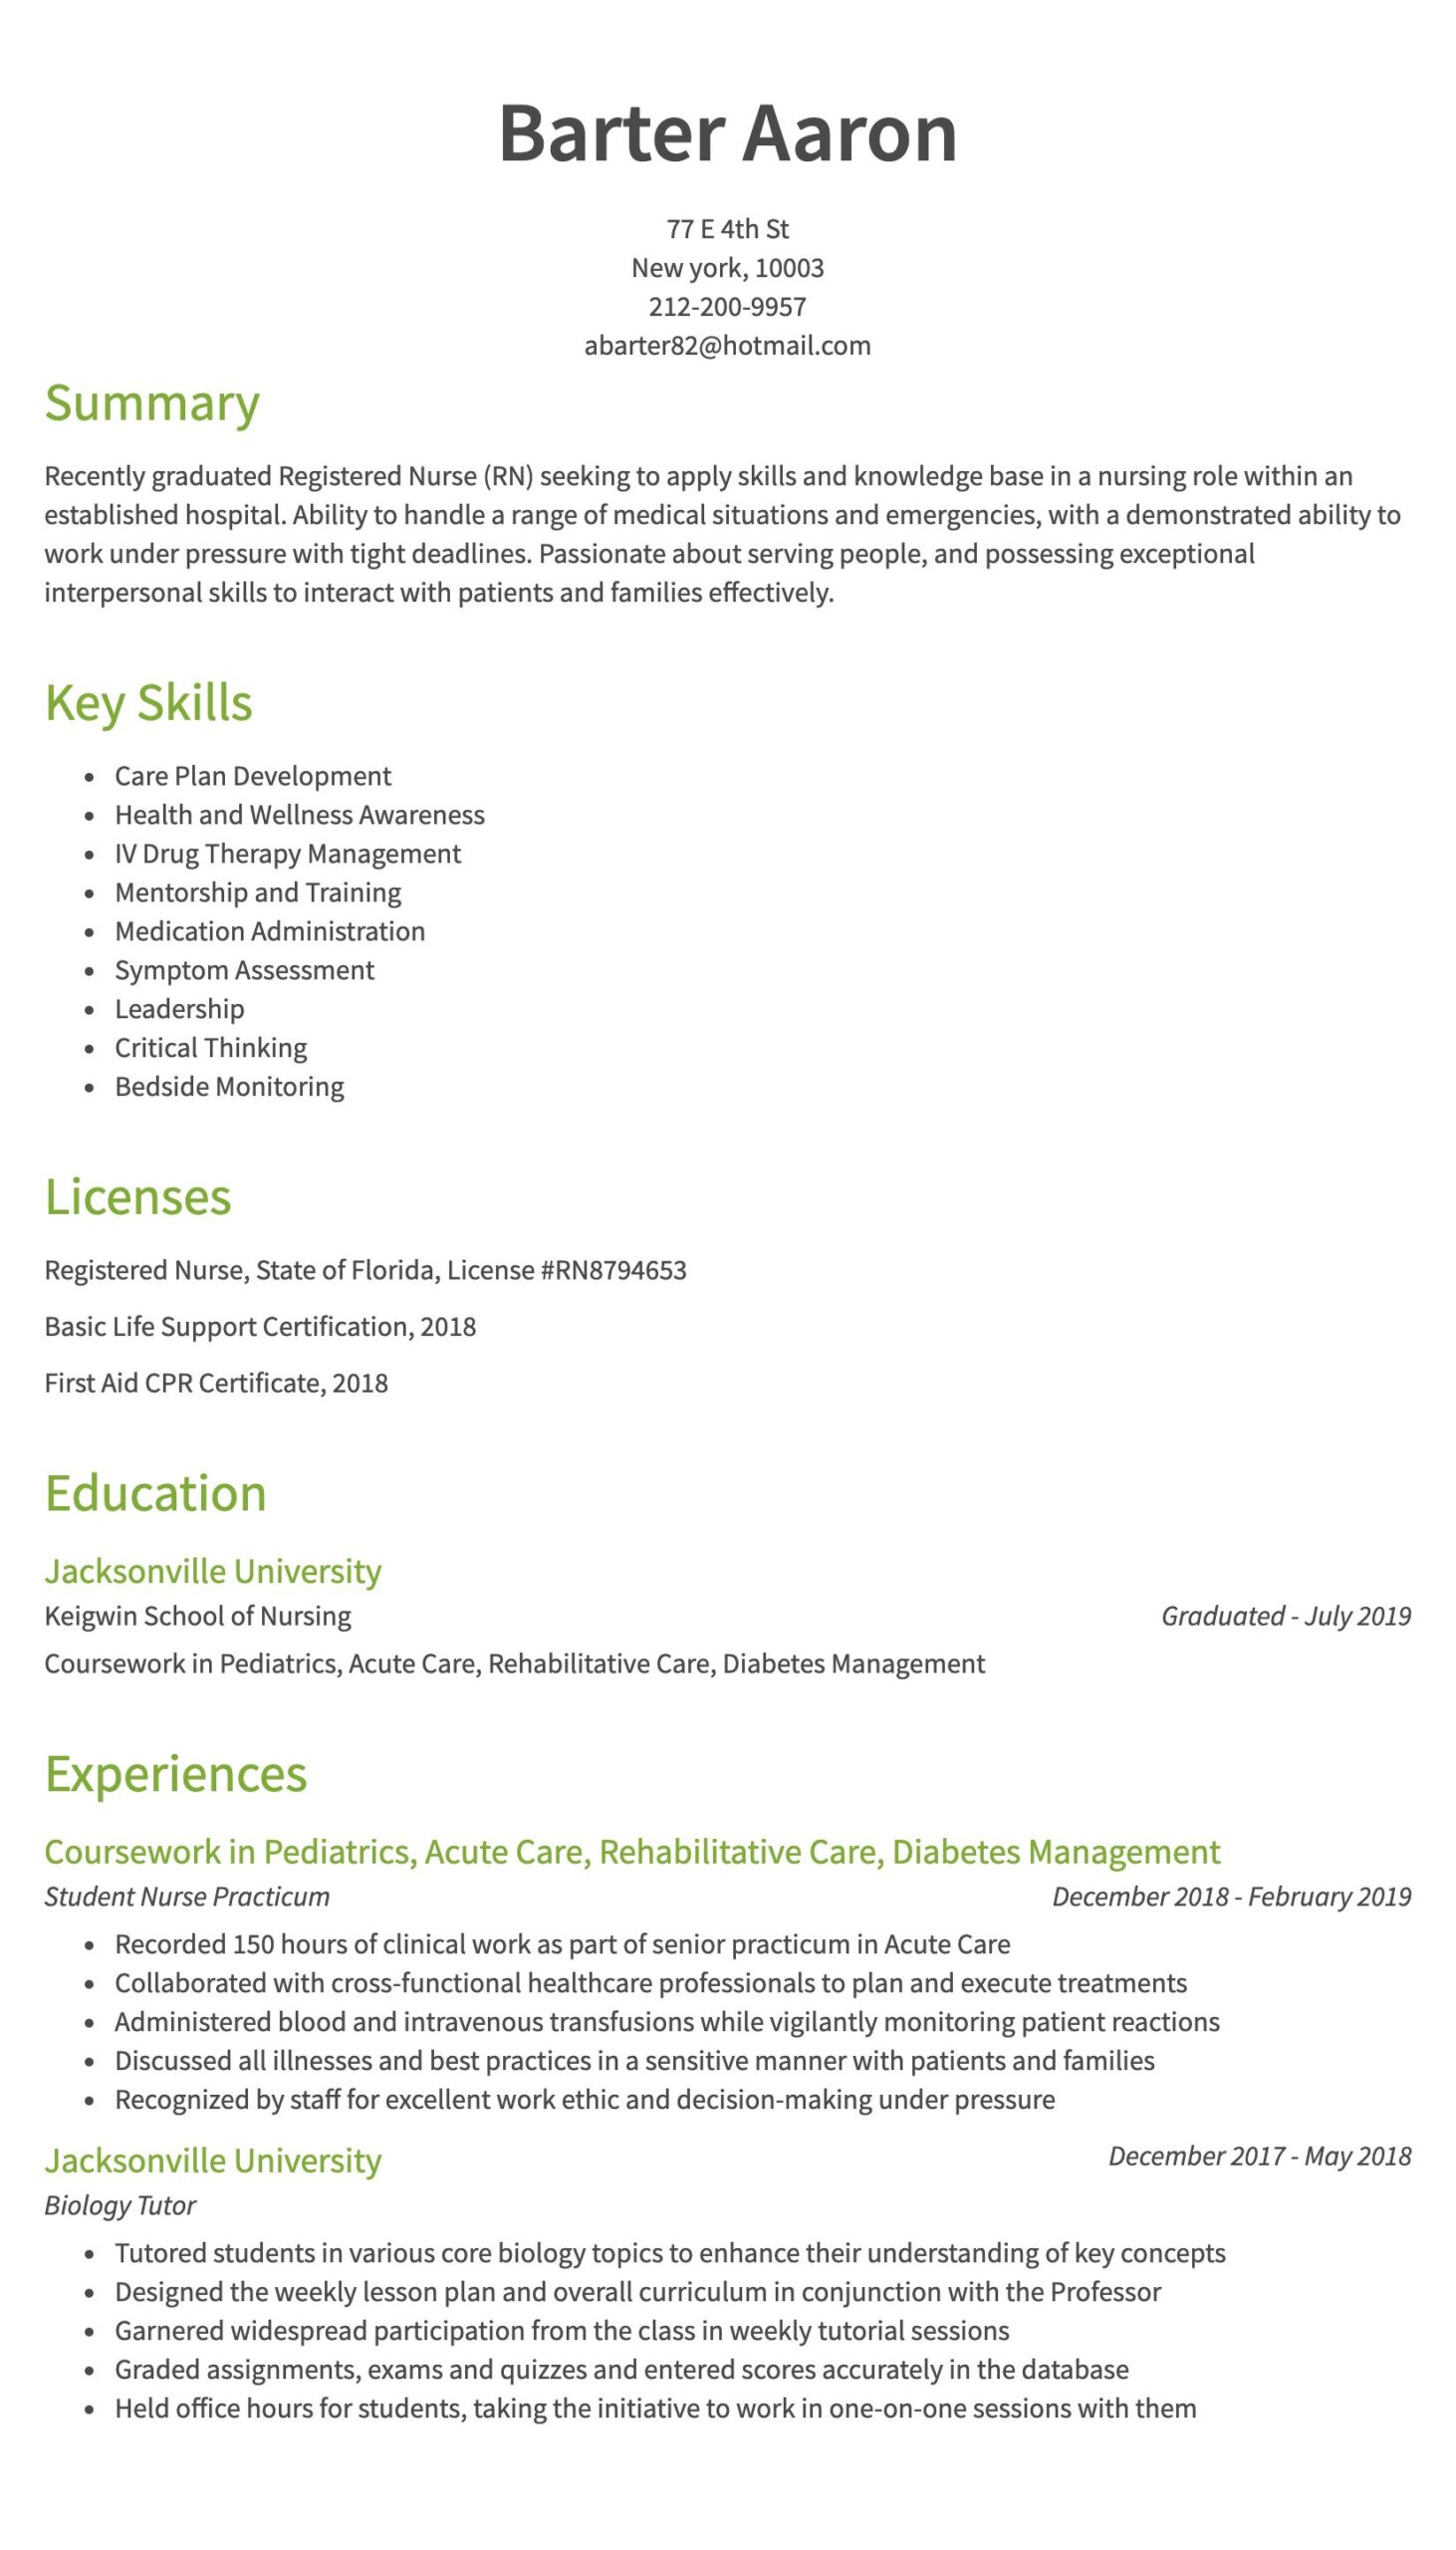 nursing resume examples samples written by rn managers sample for nurses with experience Resume Sample Resume For Nurses With Experience